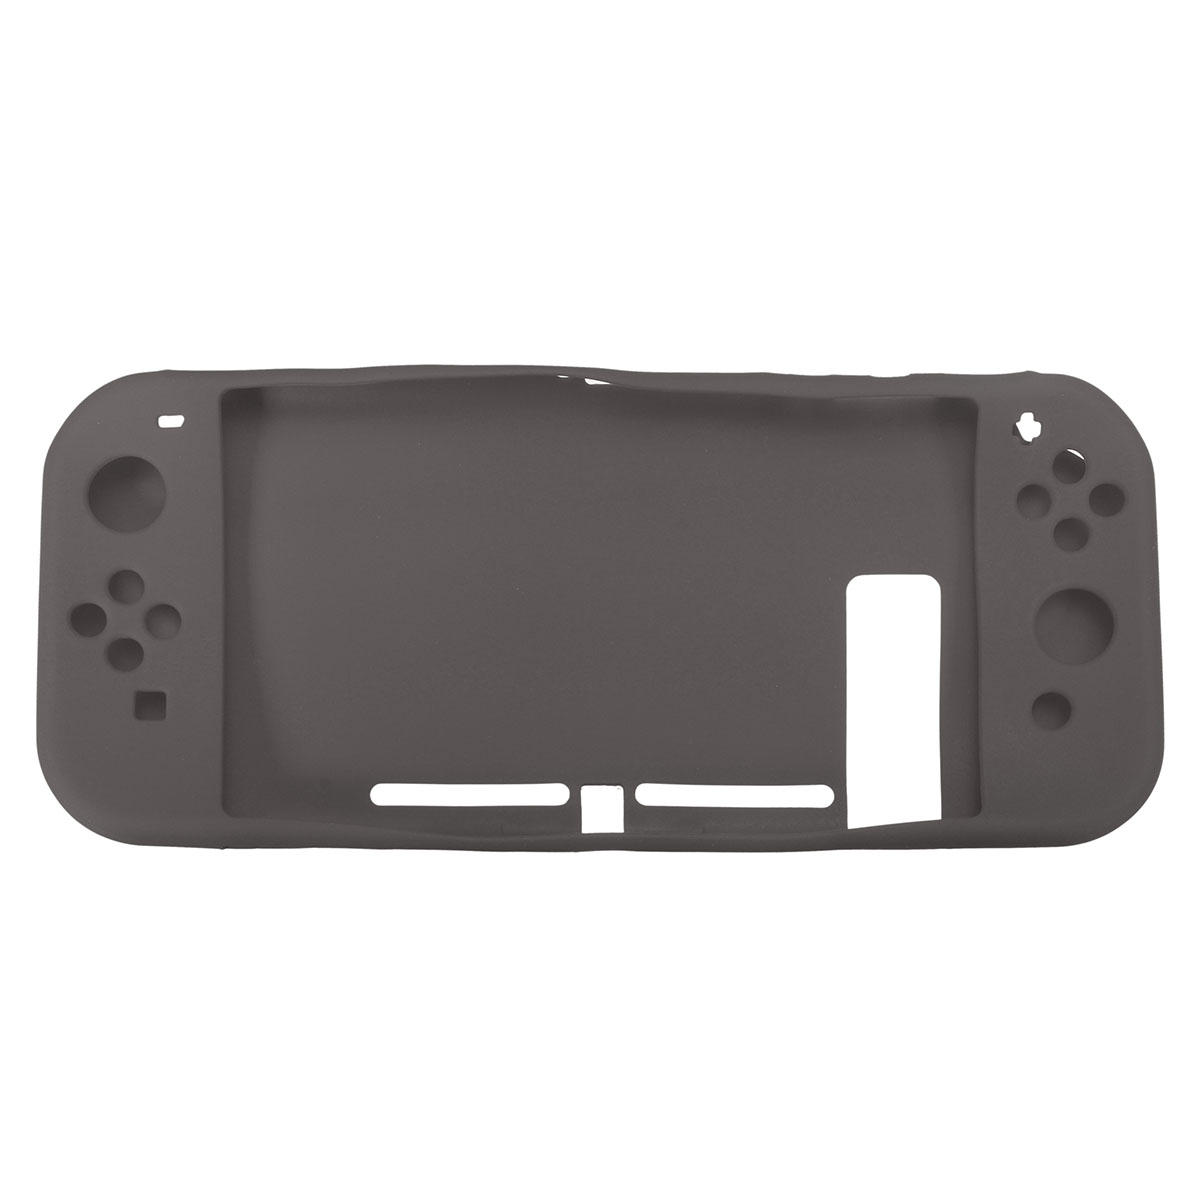 Soft Silicone Protecter Protective Case Cover for Nintendo Switch Game Console